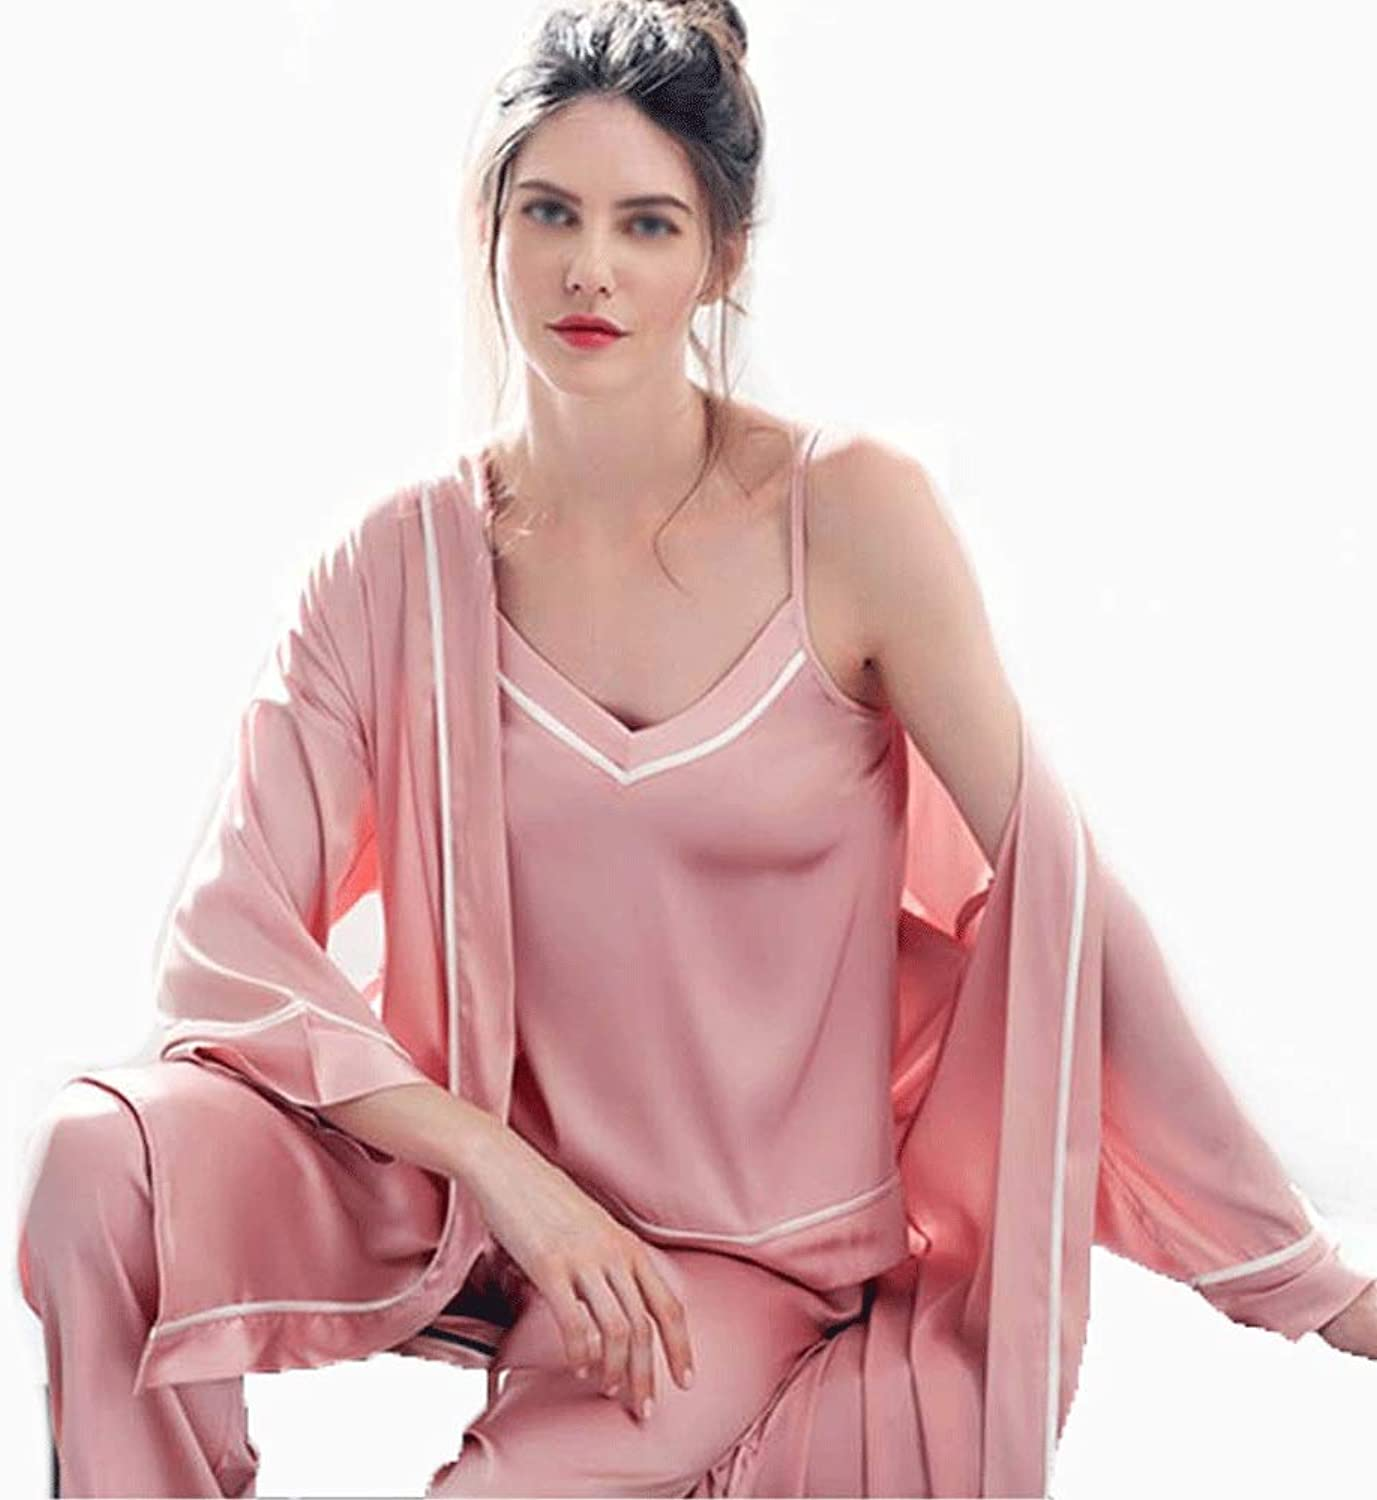 YONGYONG Pajamas Women's Spring and Autumn LongSleeved Ice Silk Pink Sexy Sling ThreePiece Loose Home Service YONGYONG (color   Pink, Size   XXL)